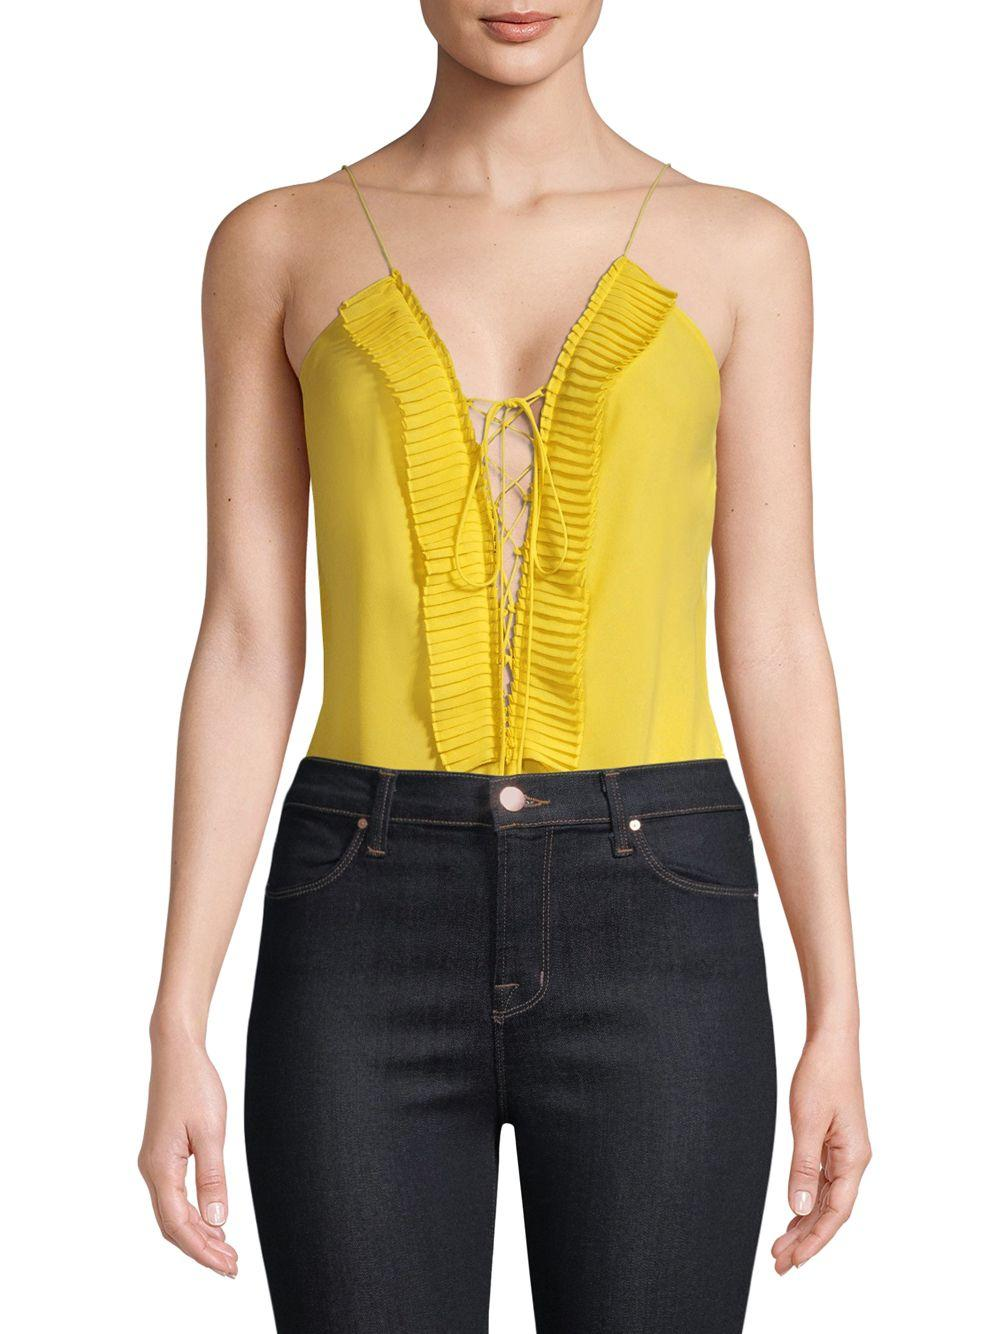 Lyst - Delfi Collective Plunging Lace-up Bodysuit in Yellow 9cd323eeb